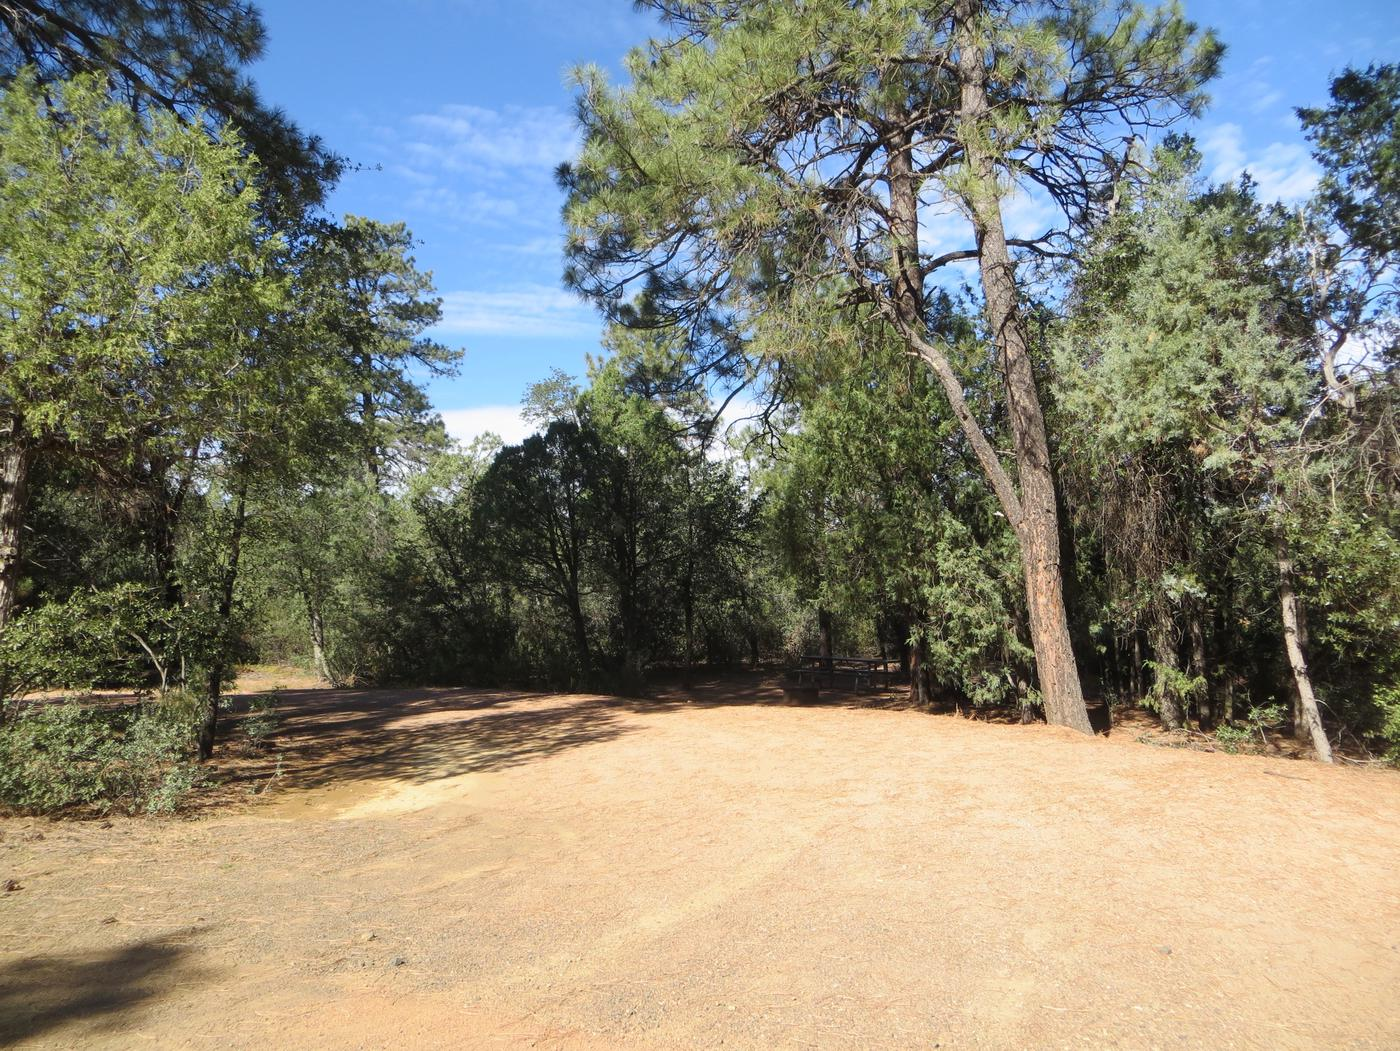 Houston Mesa, Horse Camp site #24 featuring entrance and parking to the wooded site.